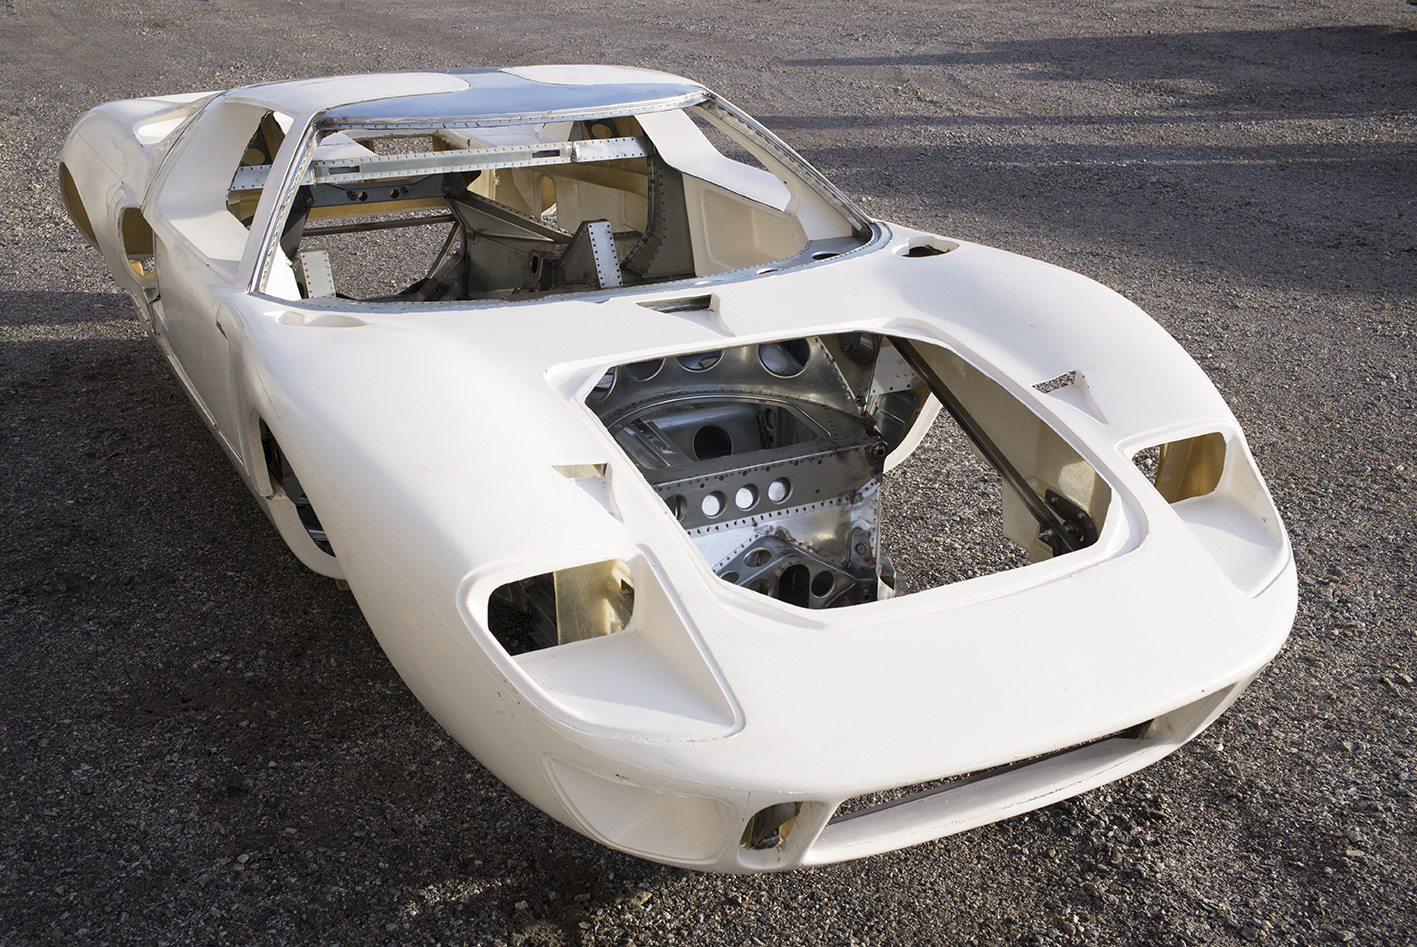 Ford Gt 2017 >> GT40 Monocoque Chassis – Building and Racing a Legend